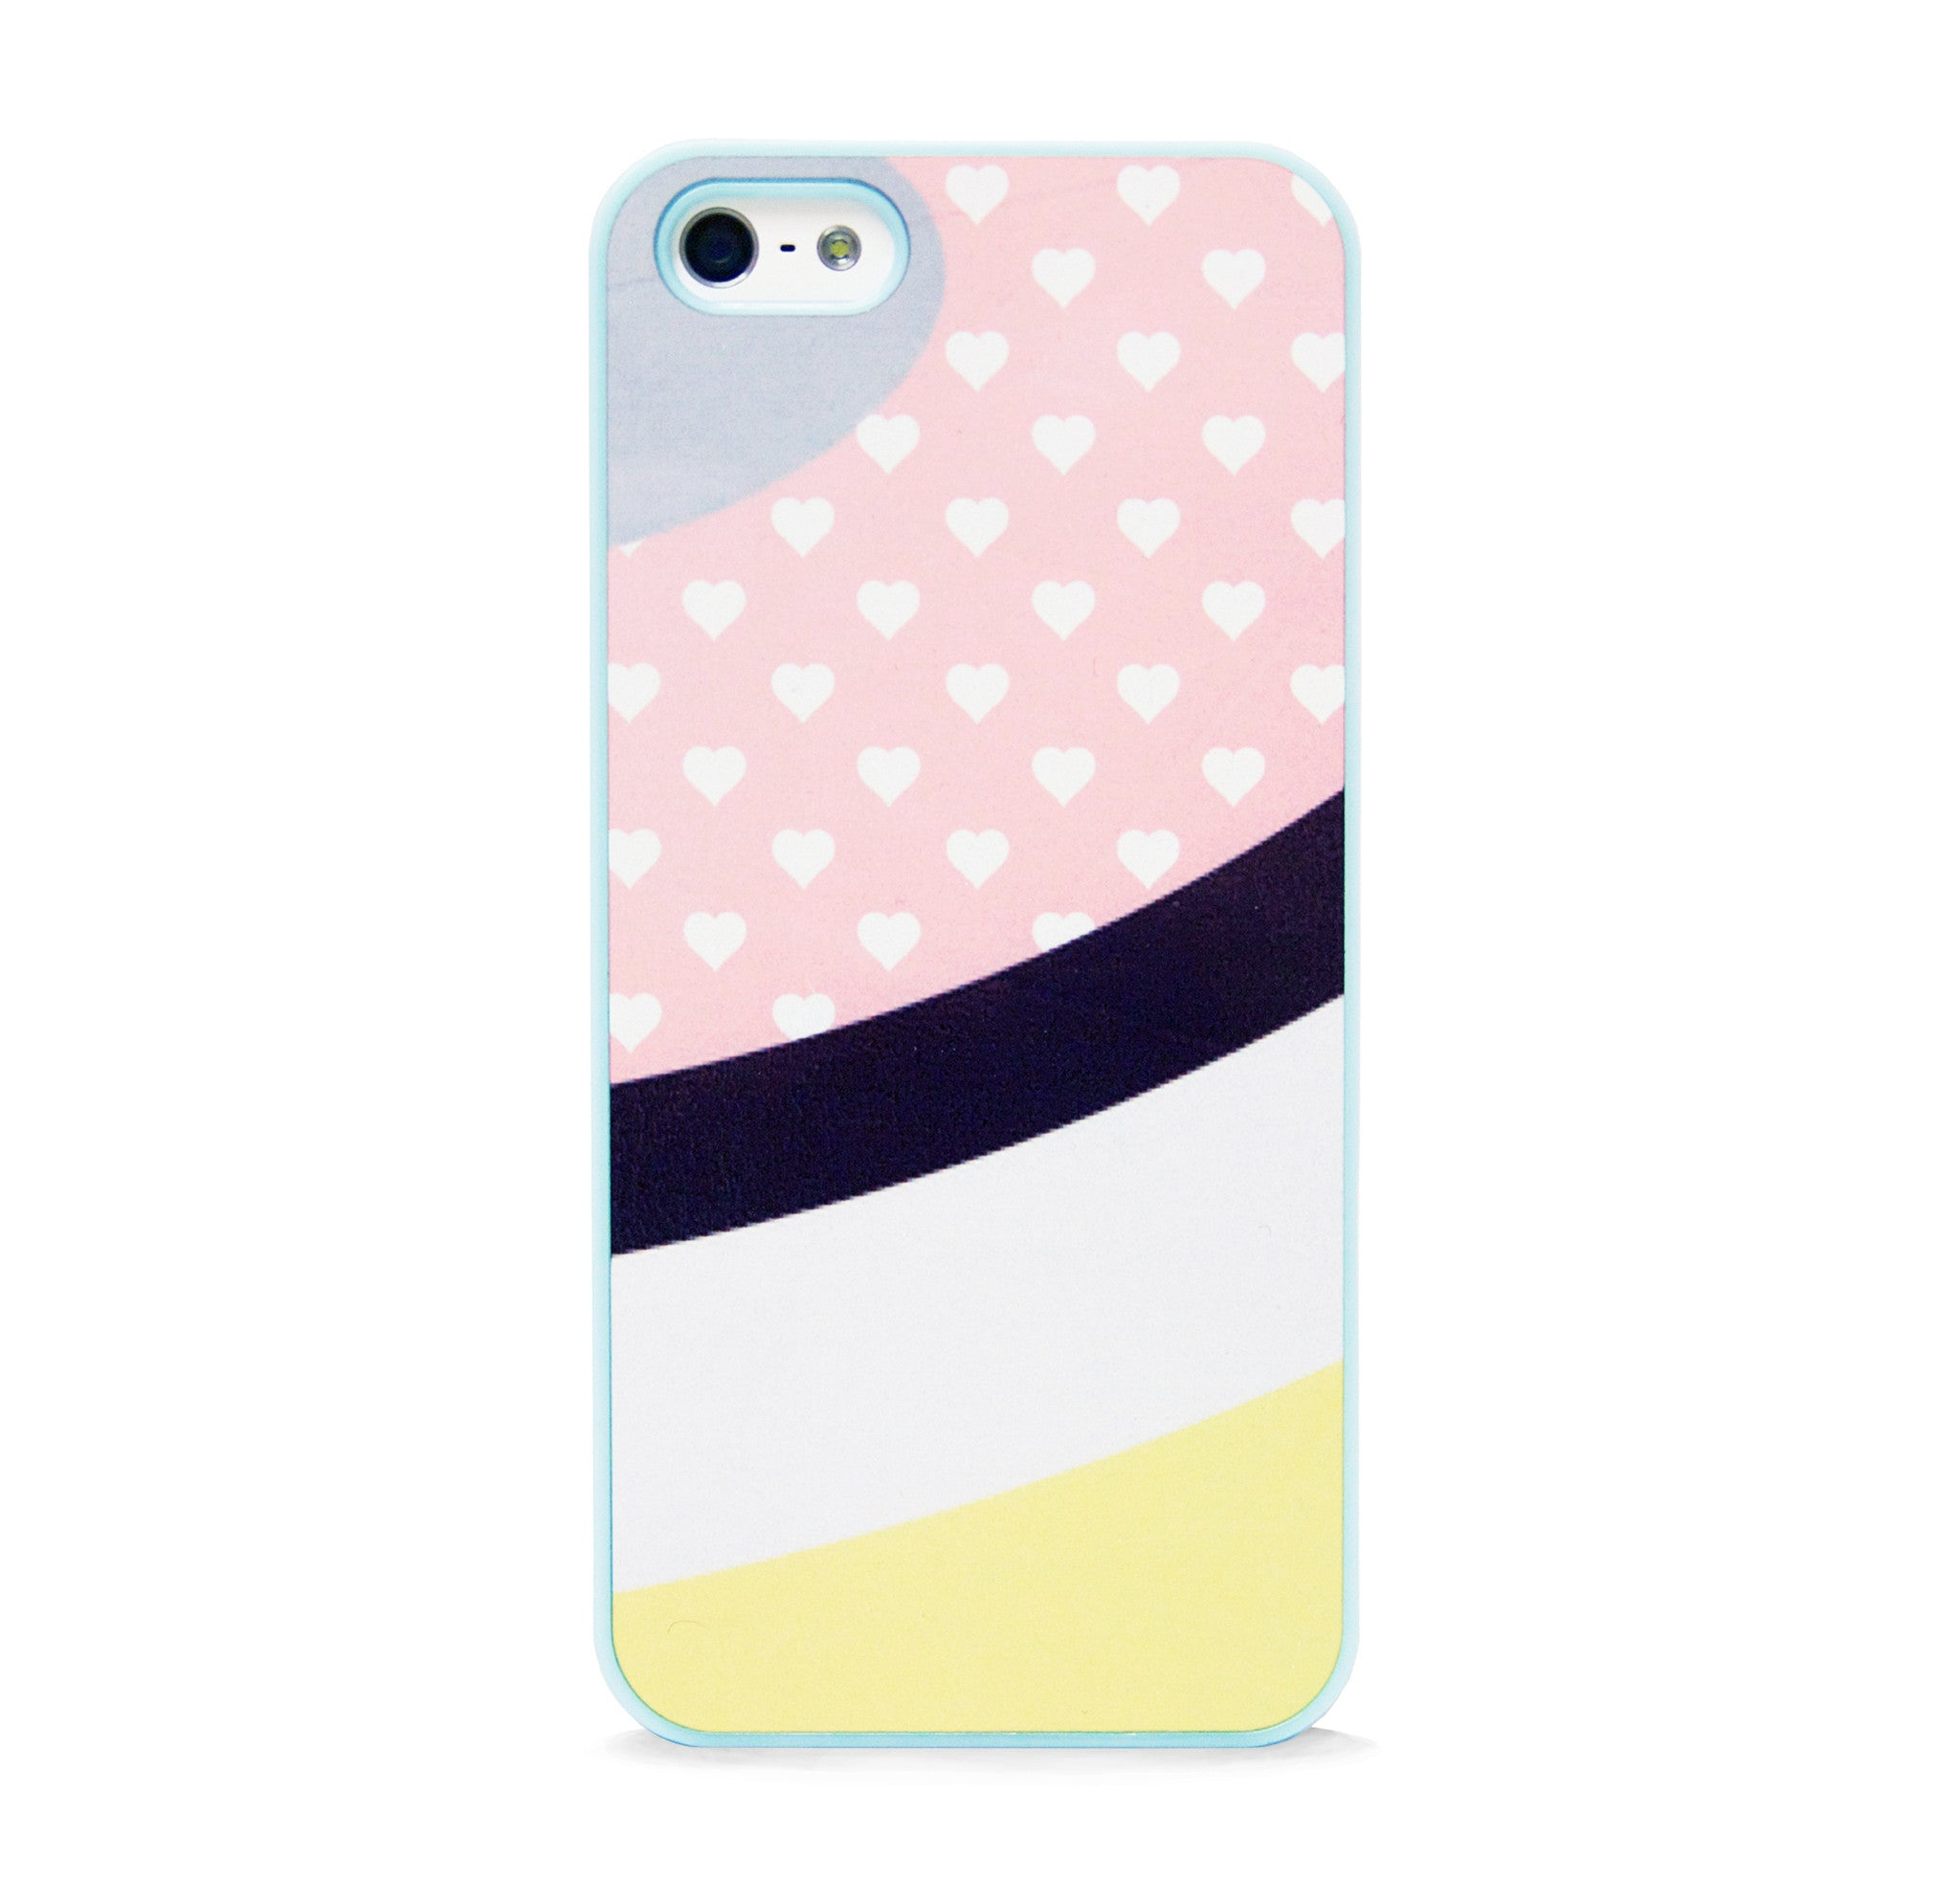 POLKA HEART PINK BLUE FOR IPHONE 5/5S, IPHONE SE